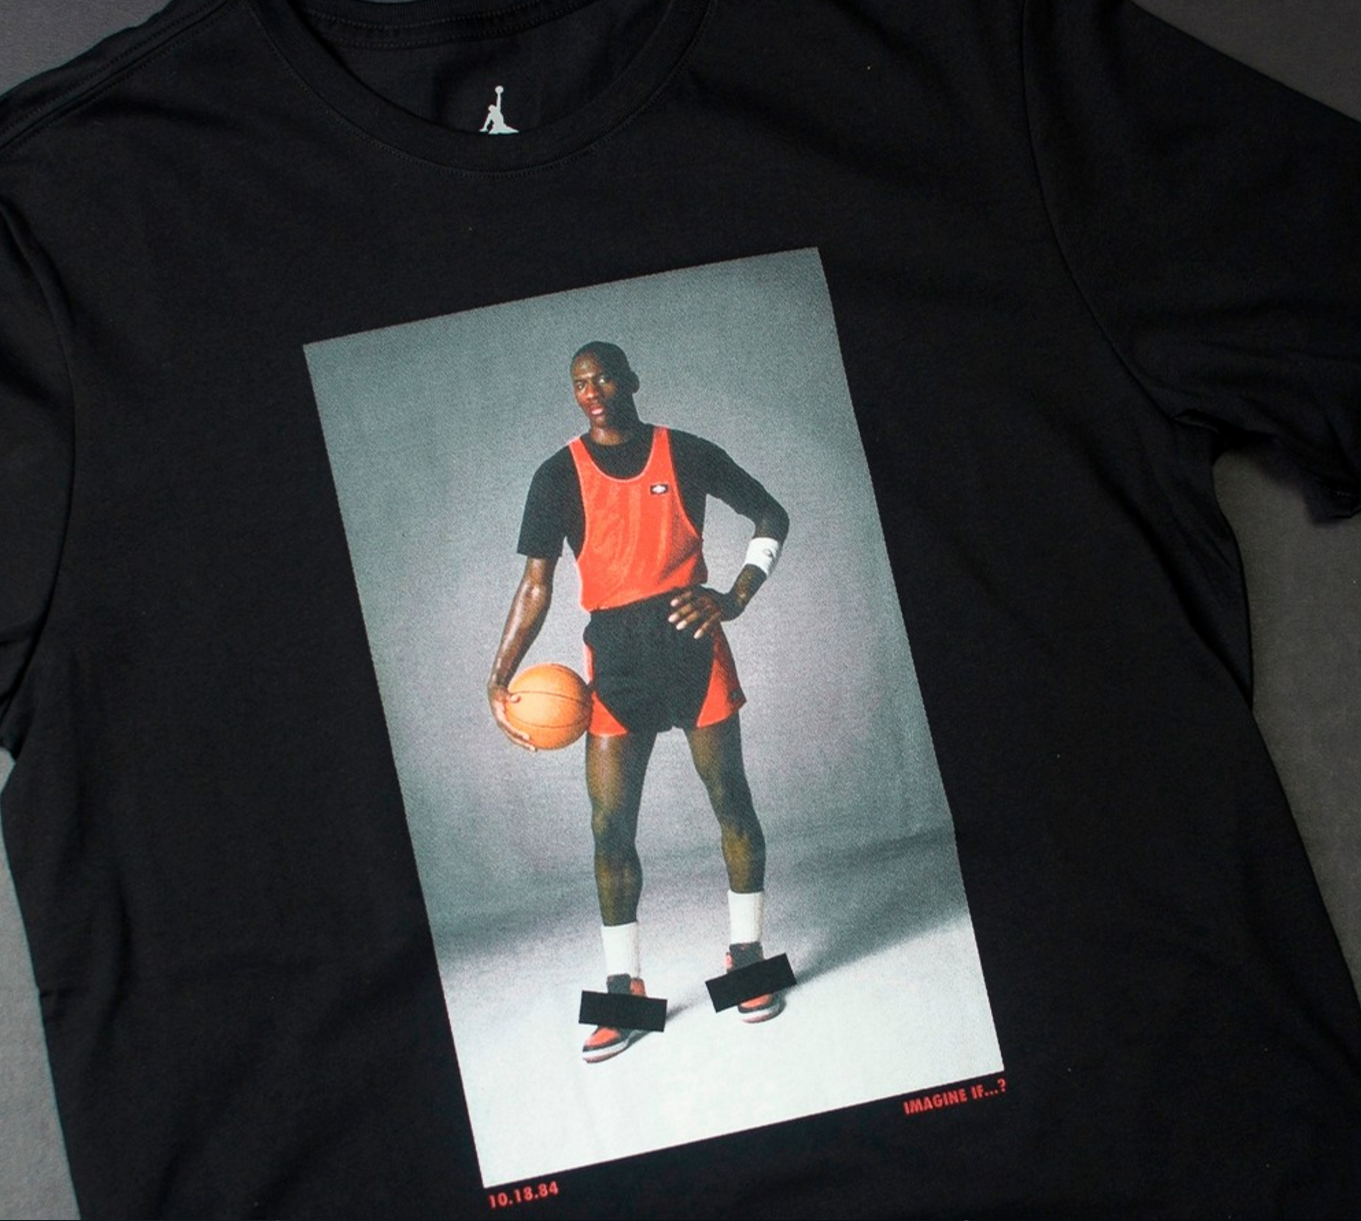 Air Jordan 1 T-shirt Interdit